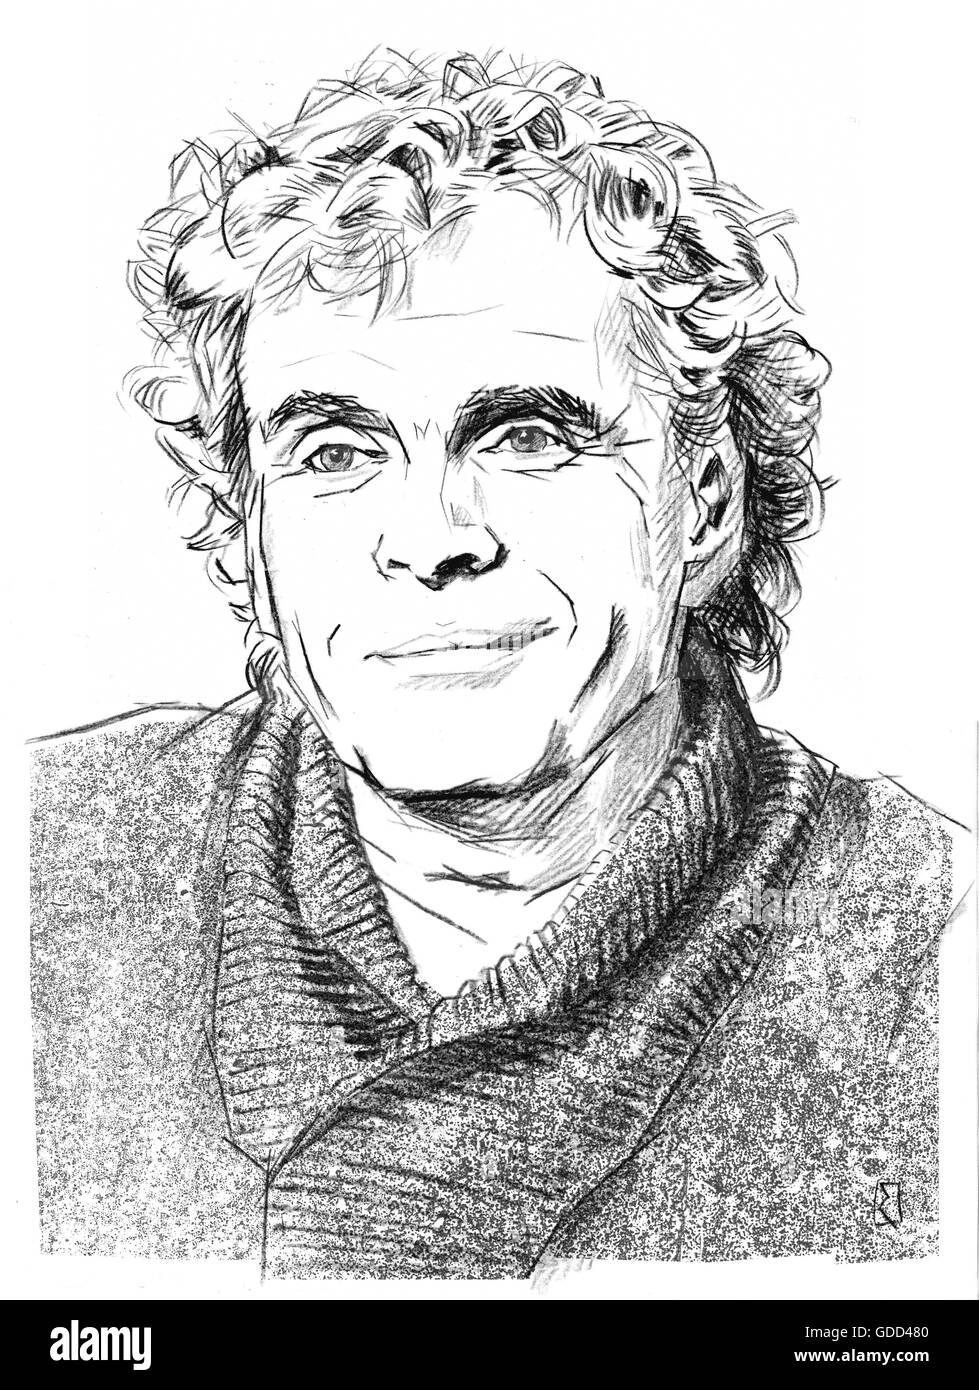 Rattle, Simon, * 19.5.1955, British musician (conductor), portrait, black-white drawing by Jan Rieckhoff, 15.1.2012, - Stock Image